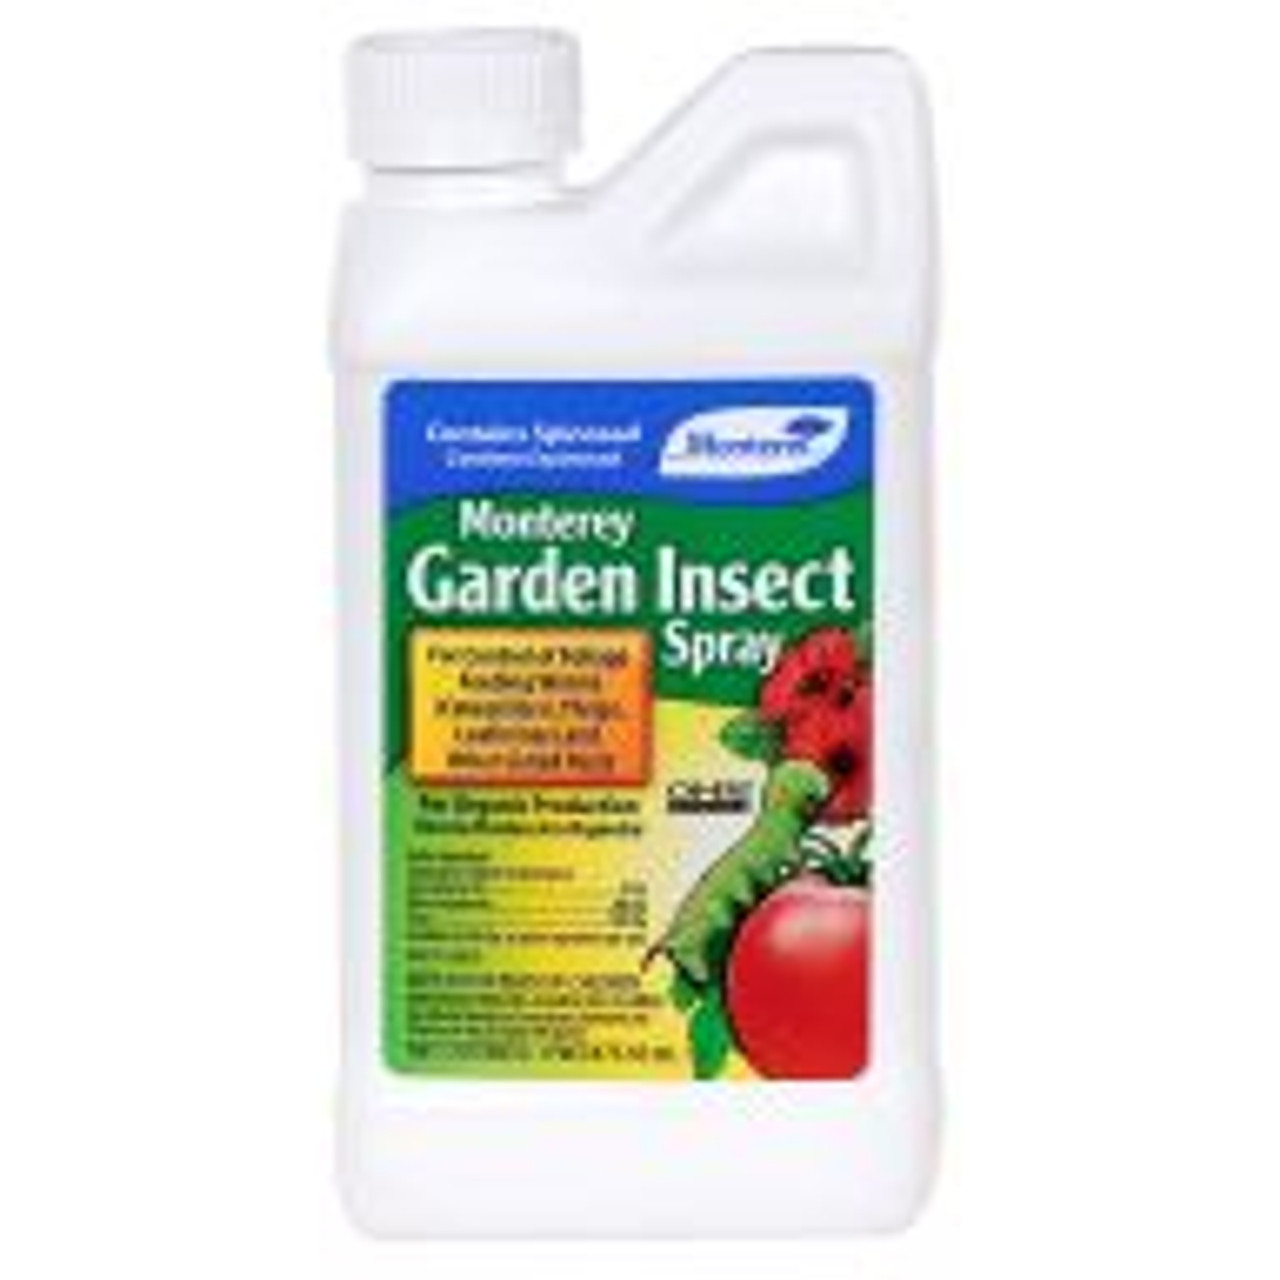 Monterey Garden Insect Spray uses Spinosad to effectively control thrips, leafminers, fire ants, diamond-back moths, borers and more. Gardeners mix four tablespoons of concentrated liquid Monterey Garden Insect Spray to one gallon of water (or as much as is needed for a single treatment) for easy foliar applications. Derived through fermentation of a naturally occurring soil bacterium, this fast-acting insecticide can be used on fruit and vegetable crops, ornamentals and turf.